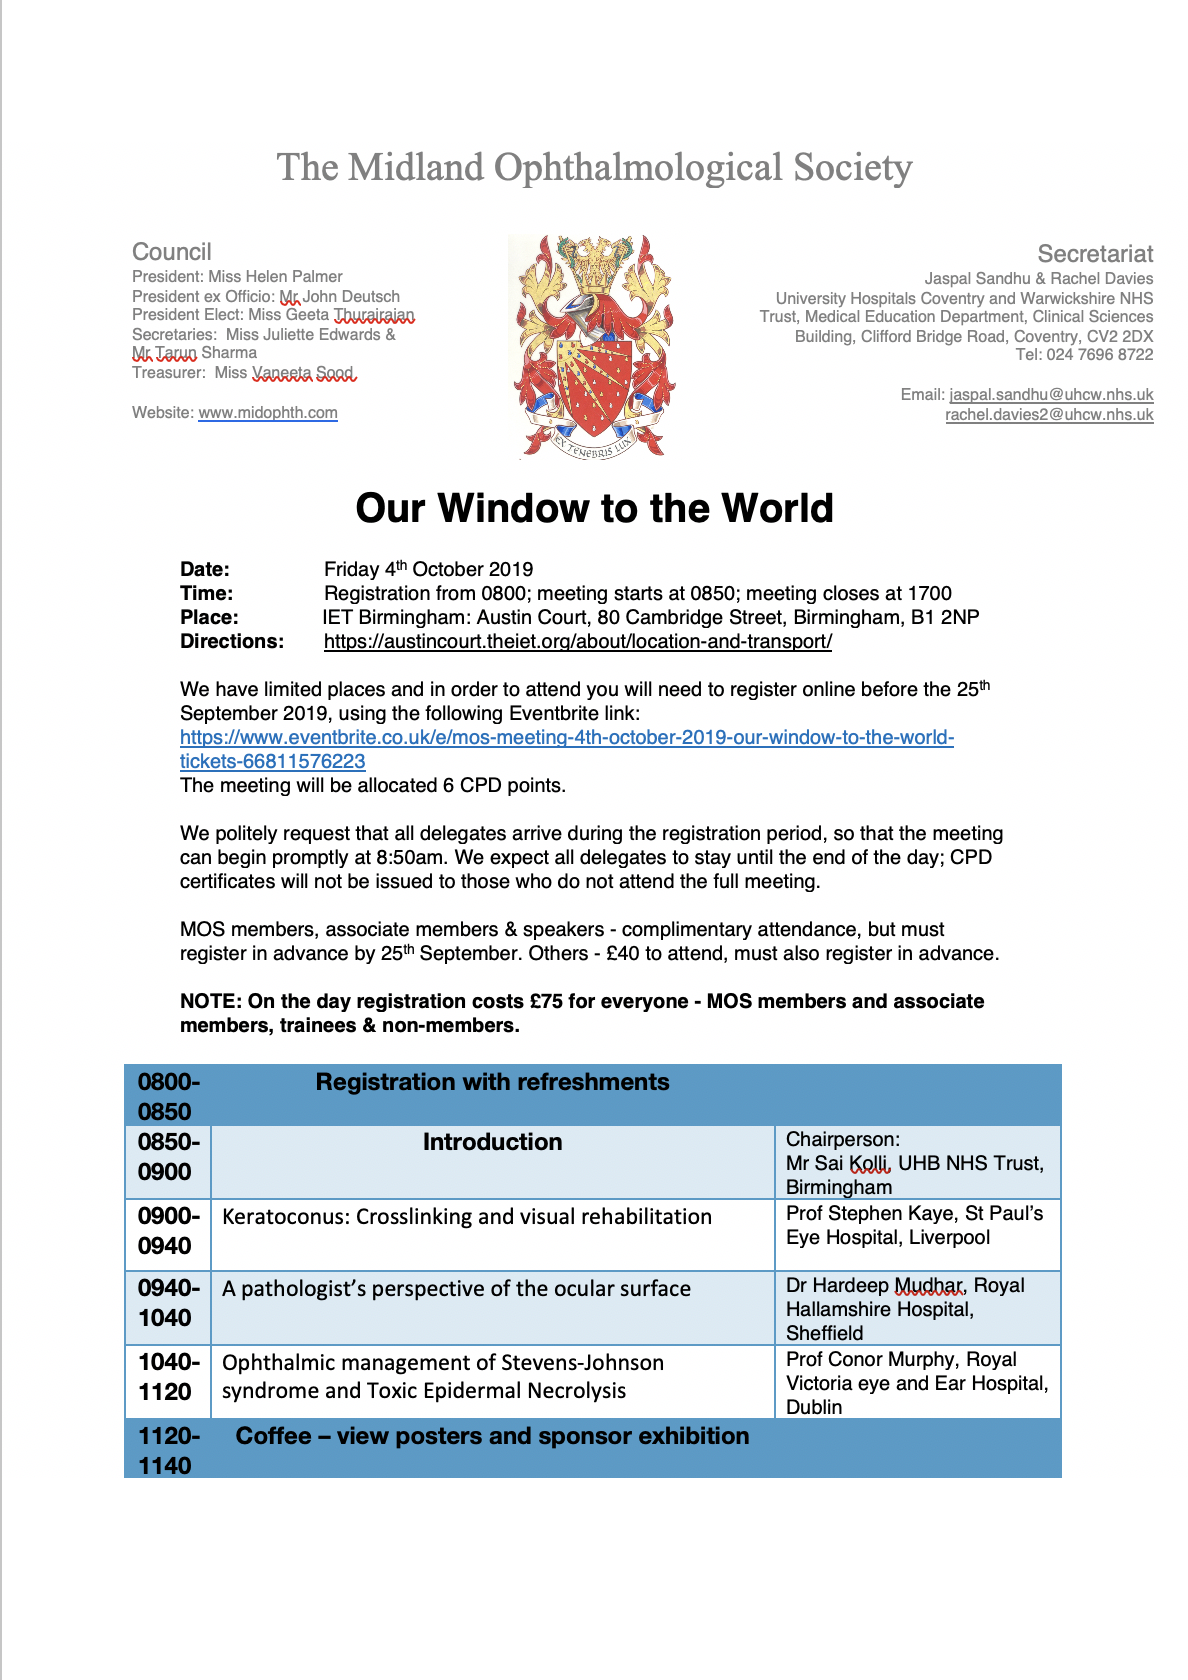 MOS Meeting, 4th October 2019 - Our Window to the World Tickets, Fri